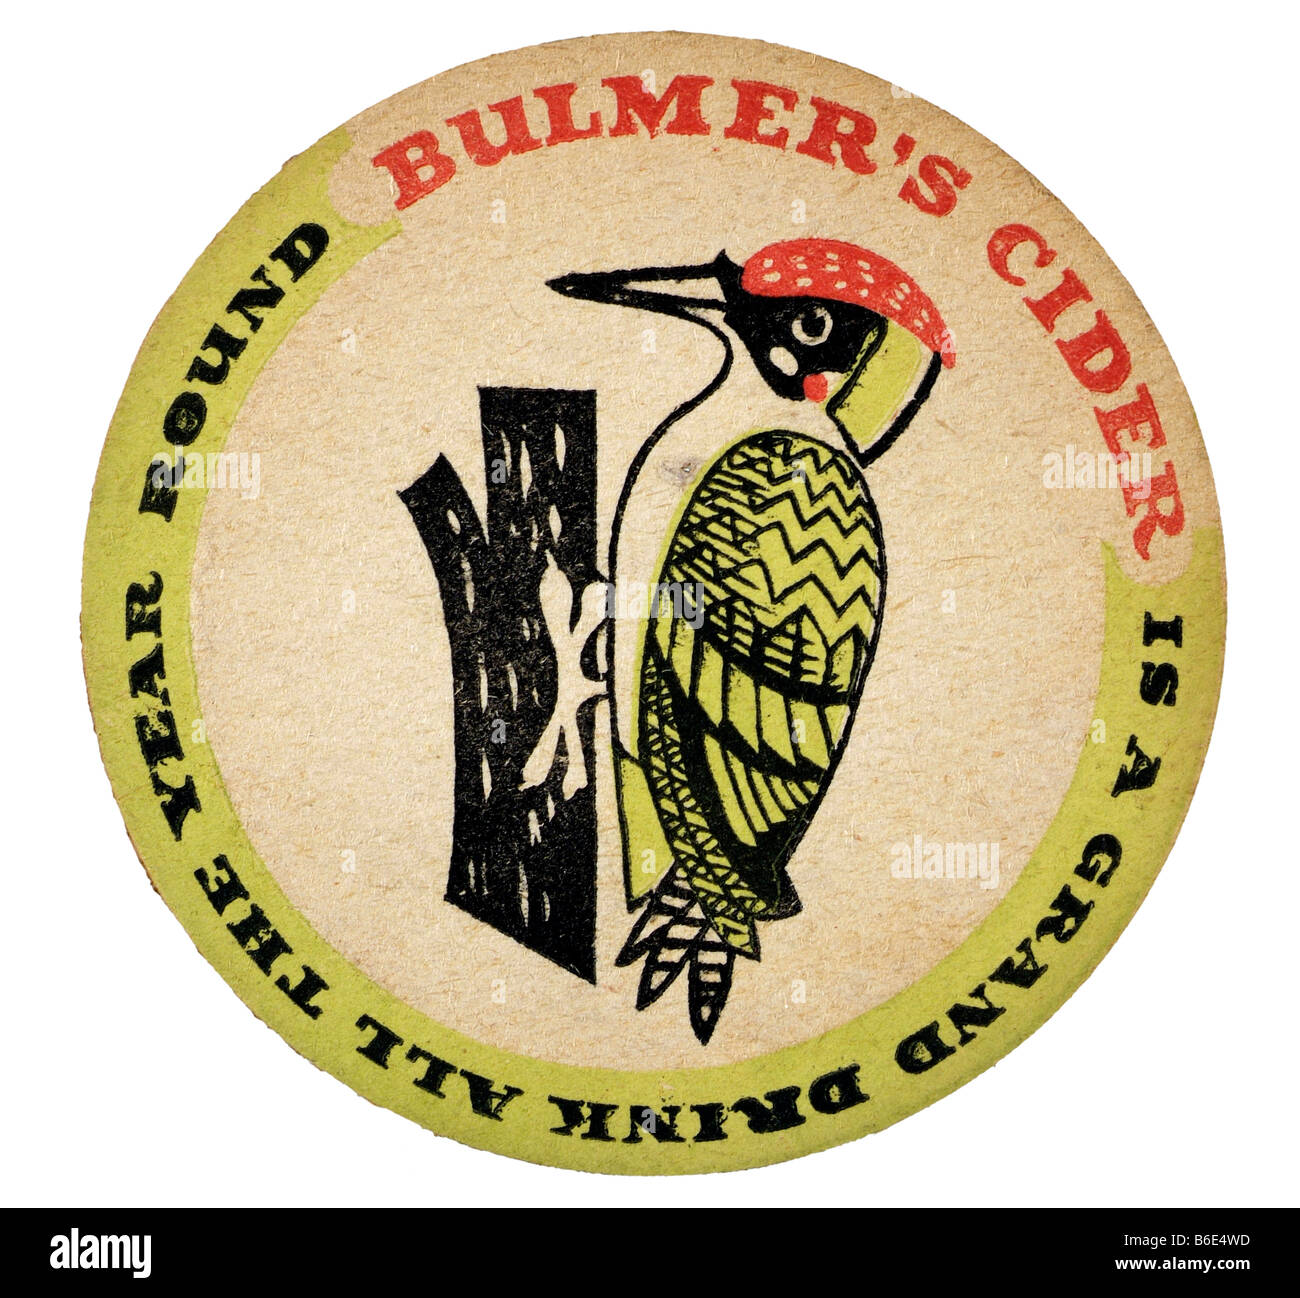 bulmers cider is a grand drink all the year round - Stock Image